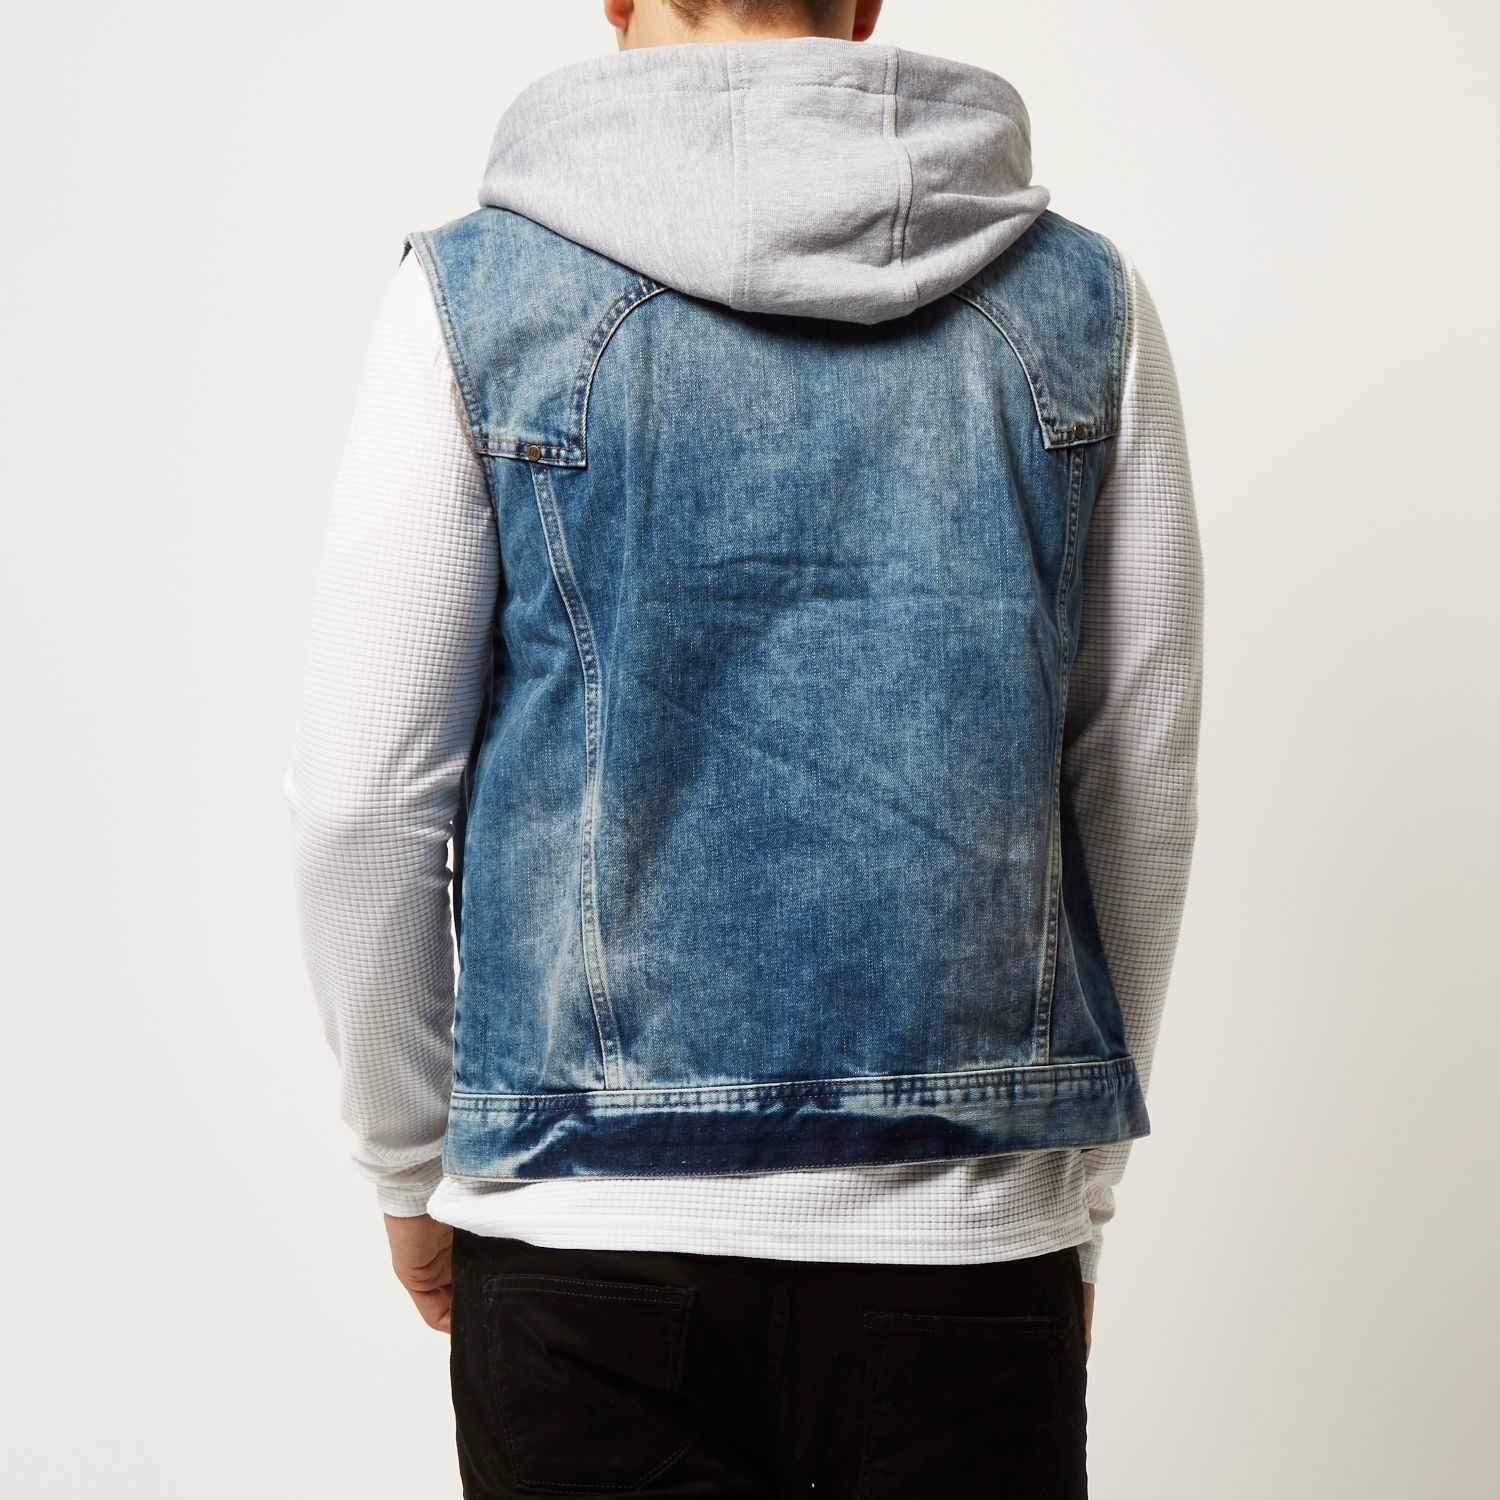 7102316ad9 River island Denim Casual Hoodie Sleeveless Jacket in Blue for Men .